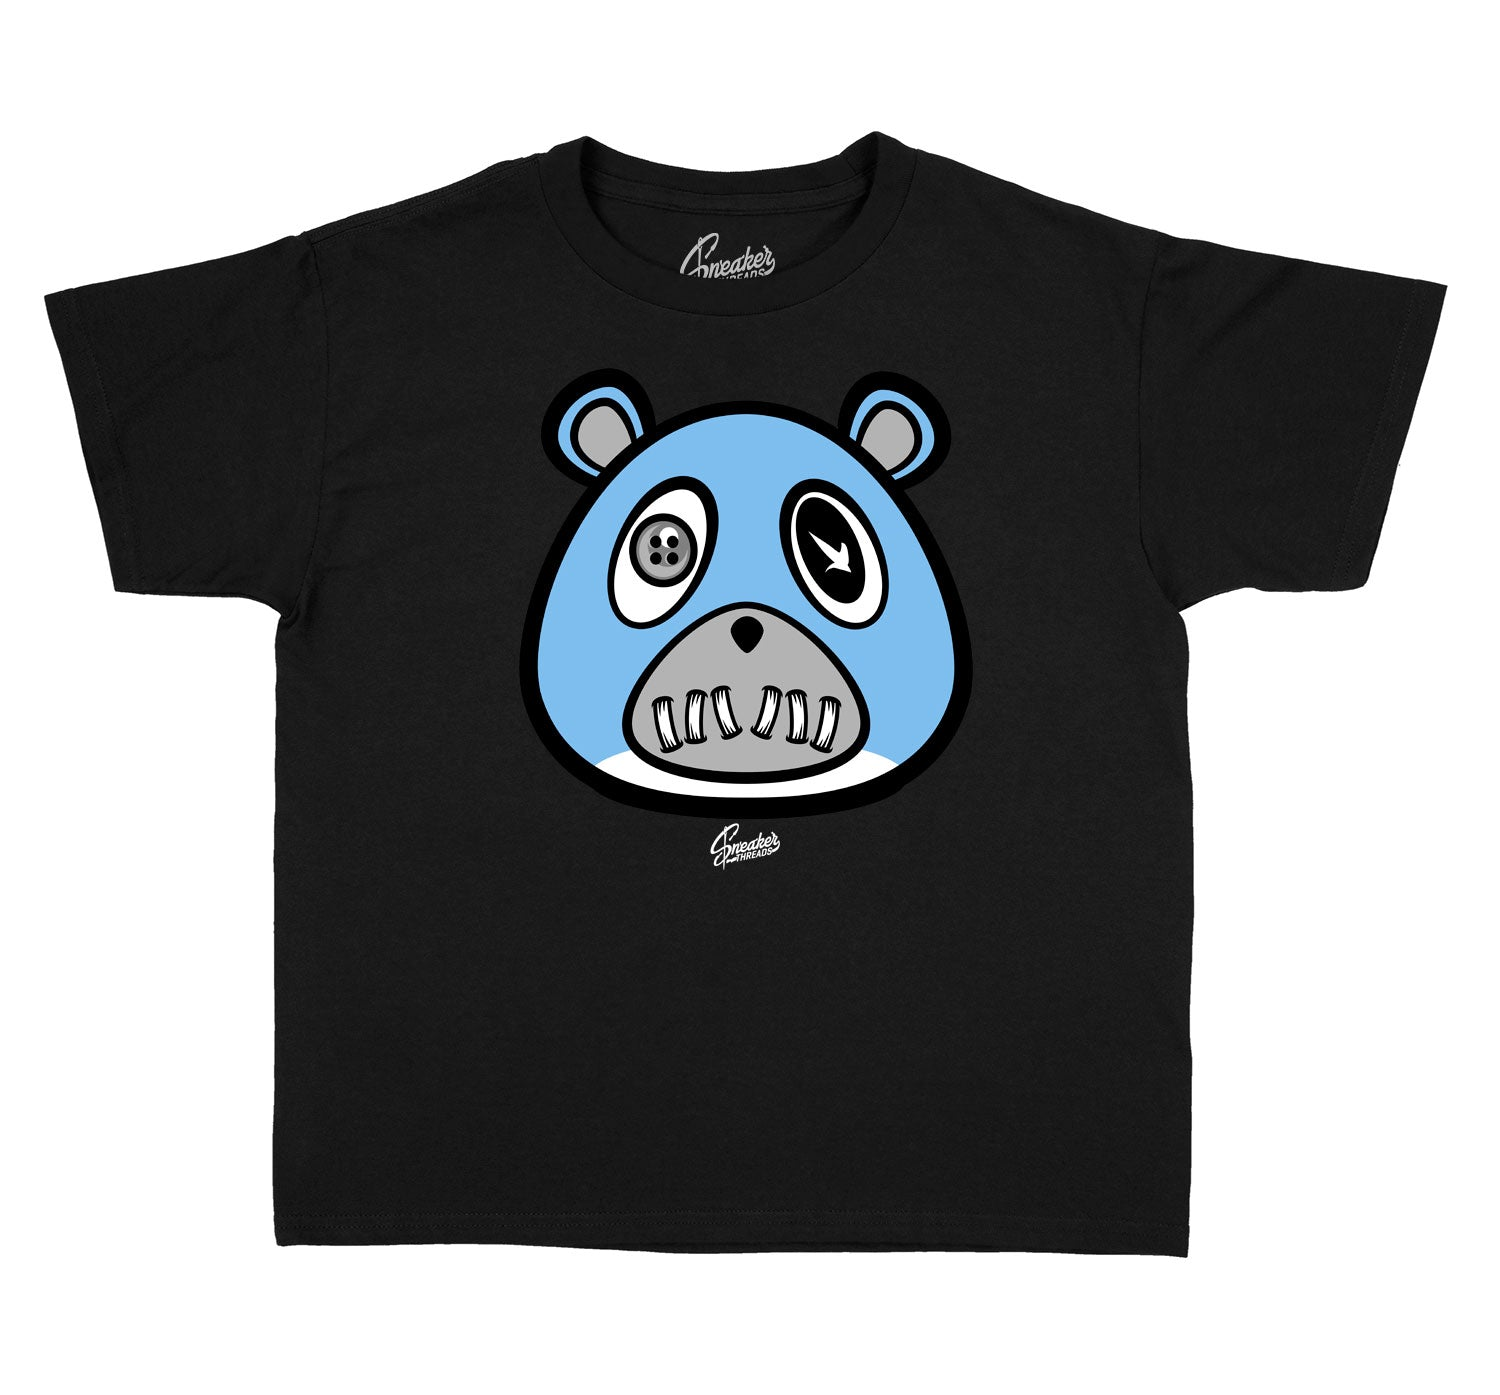 Kids University Blue 9 Shirt - ST Bear - Black